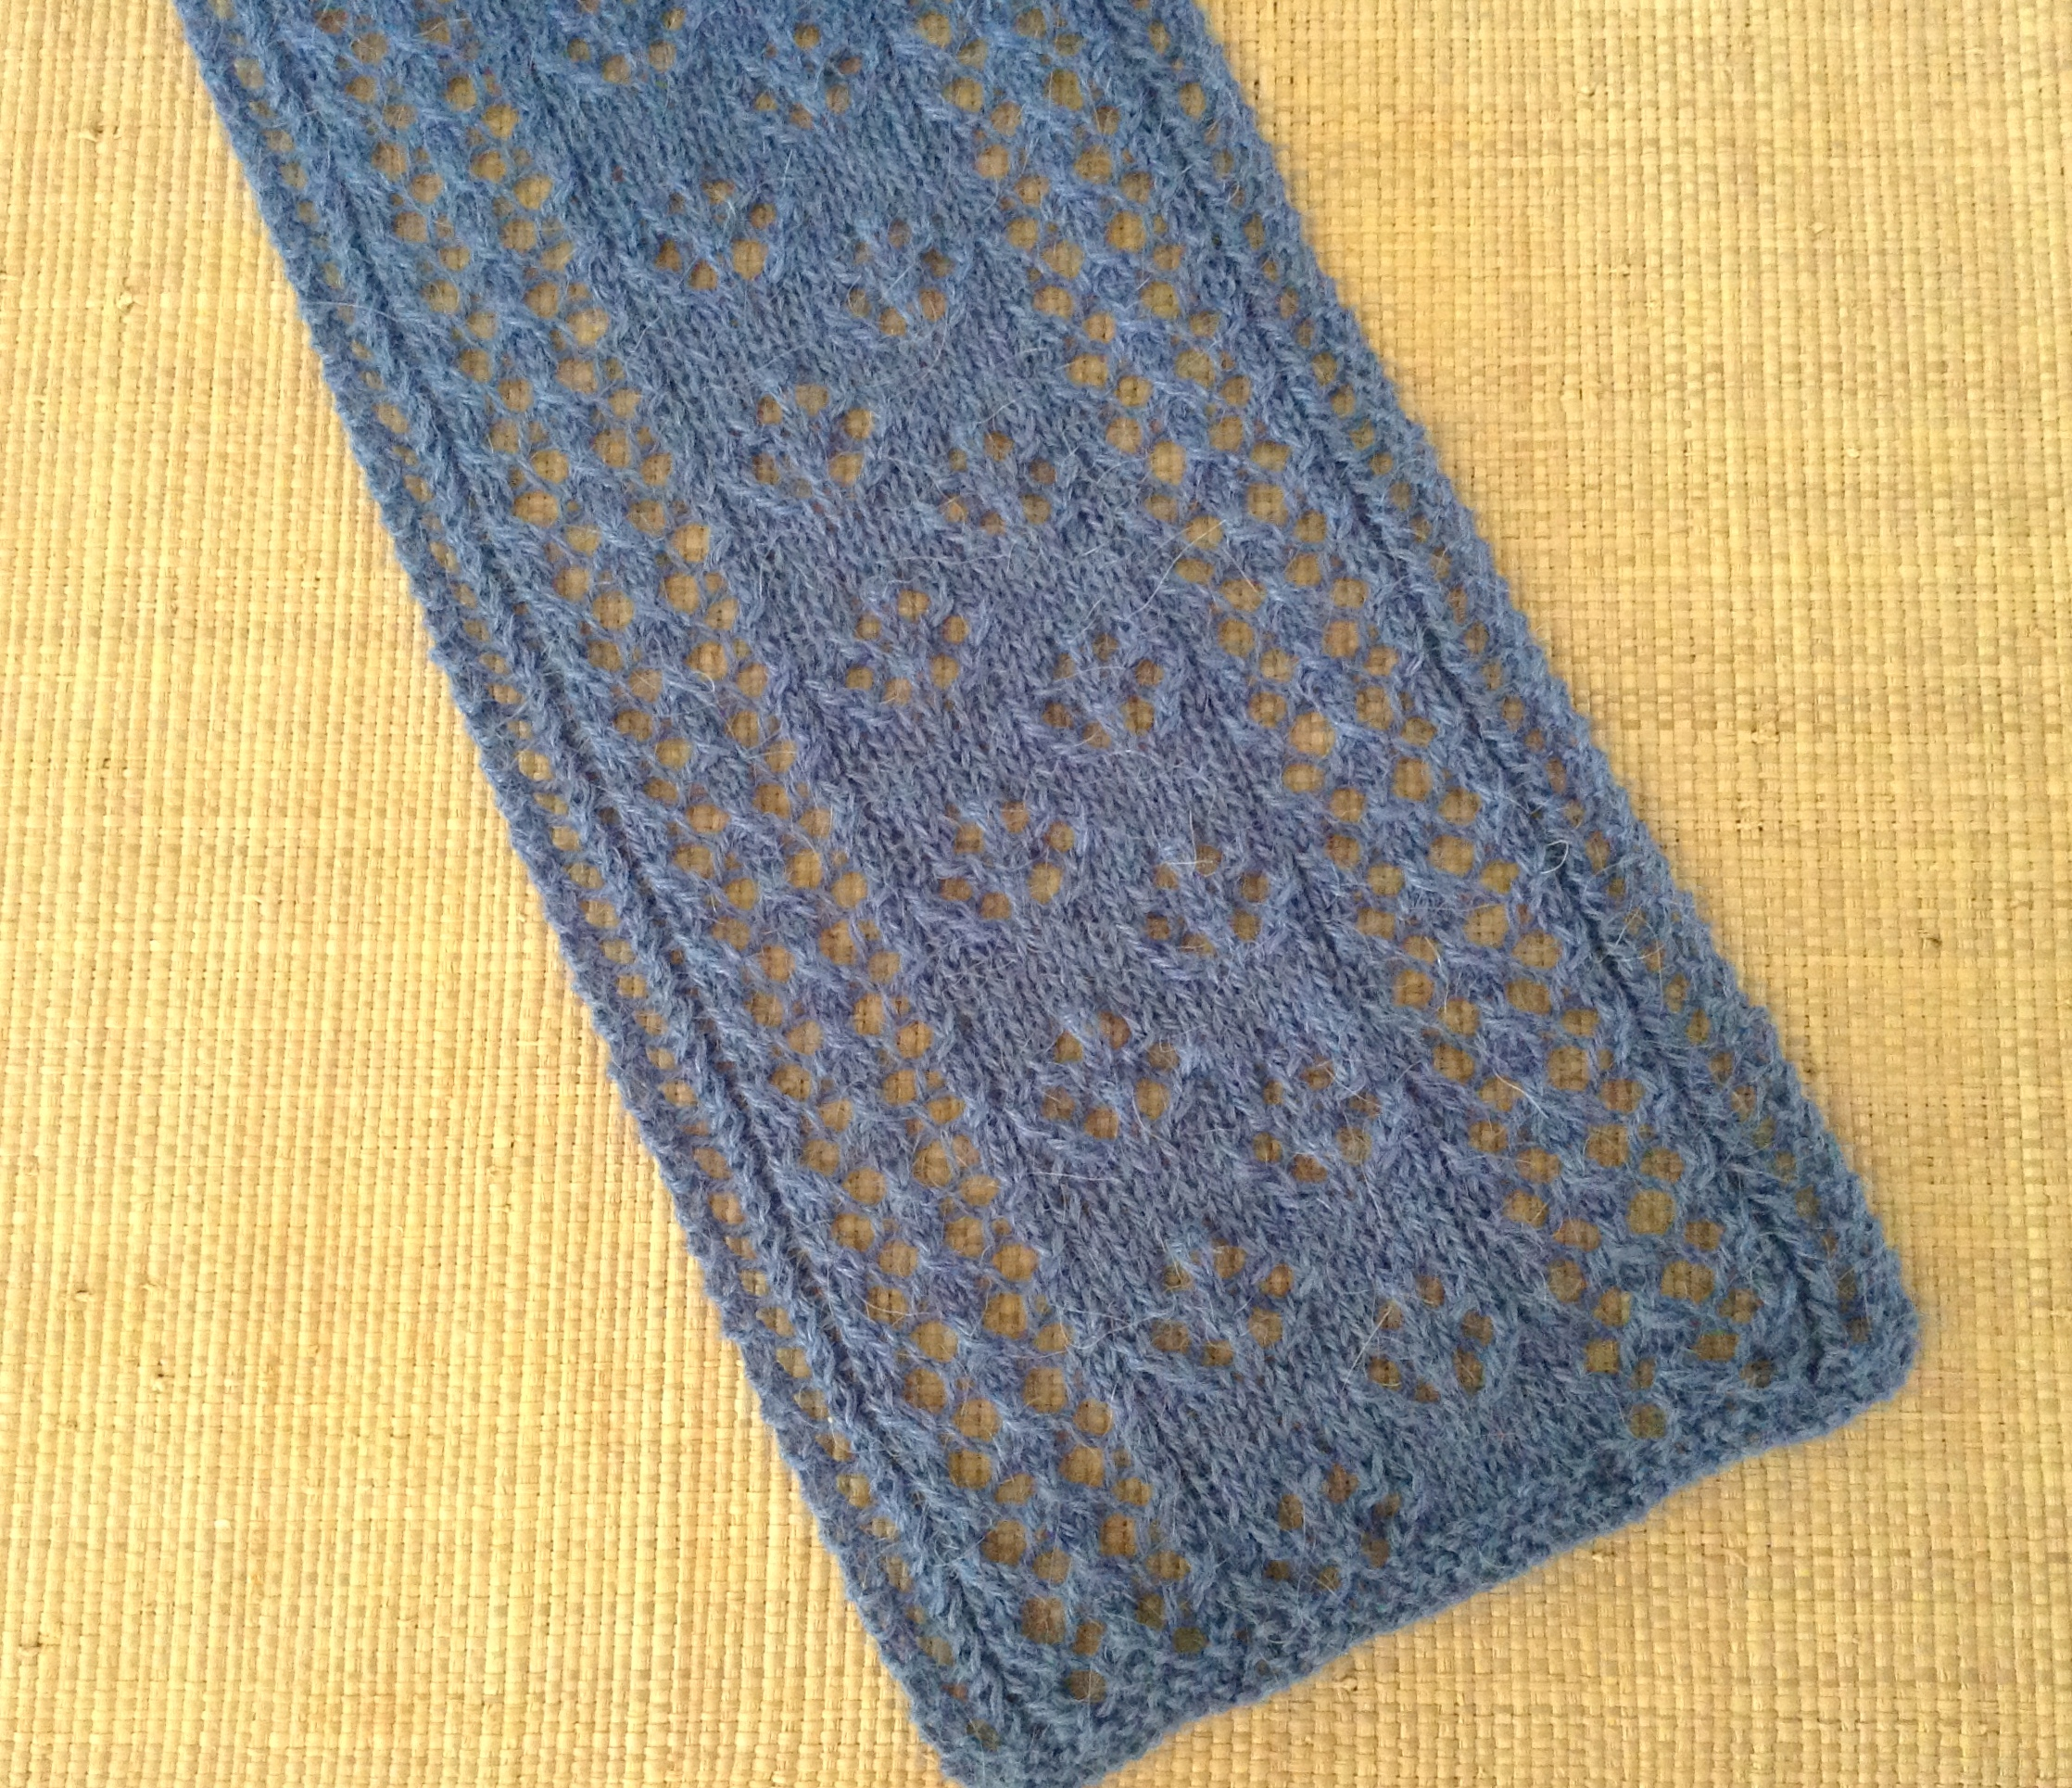 Knitting Stitches Sk2p : Practice Basic Lace Knitting Stitches   and Knit a Scarf! This Man Knits